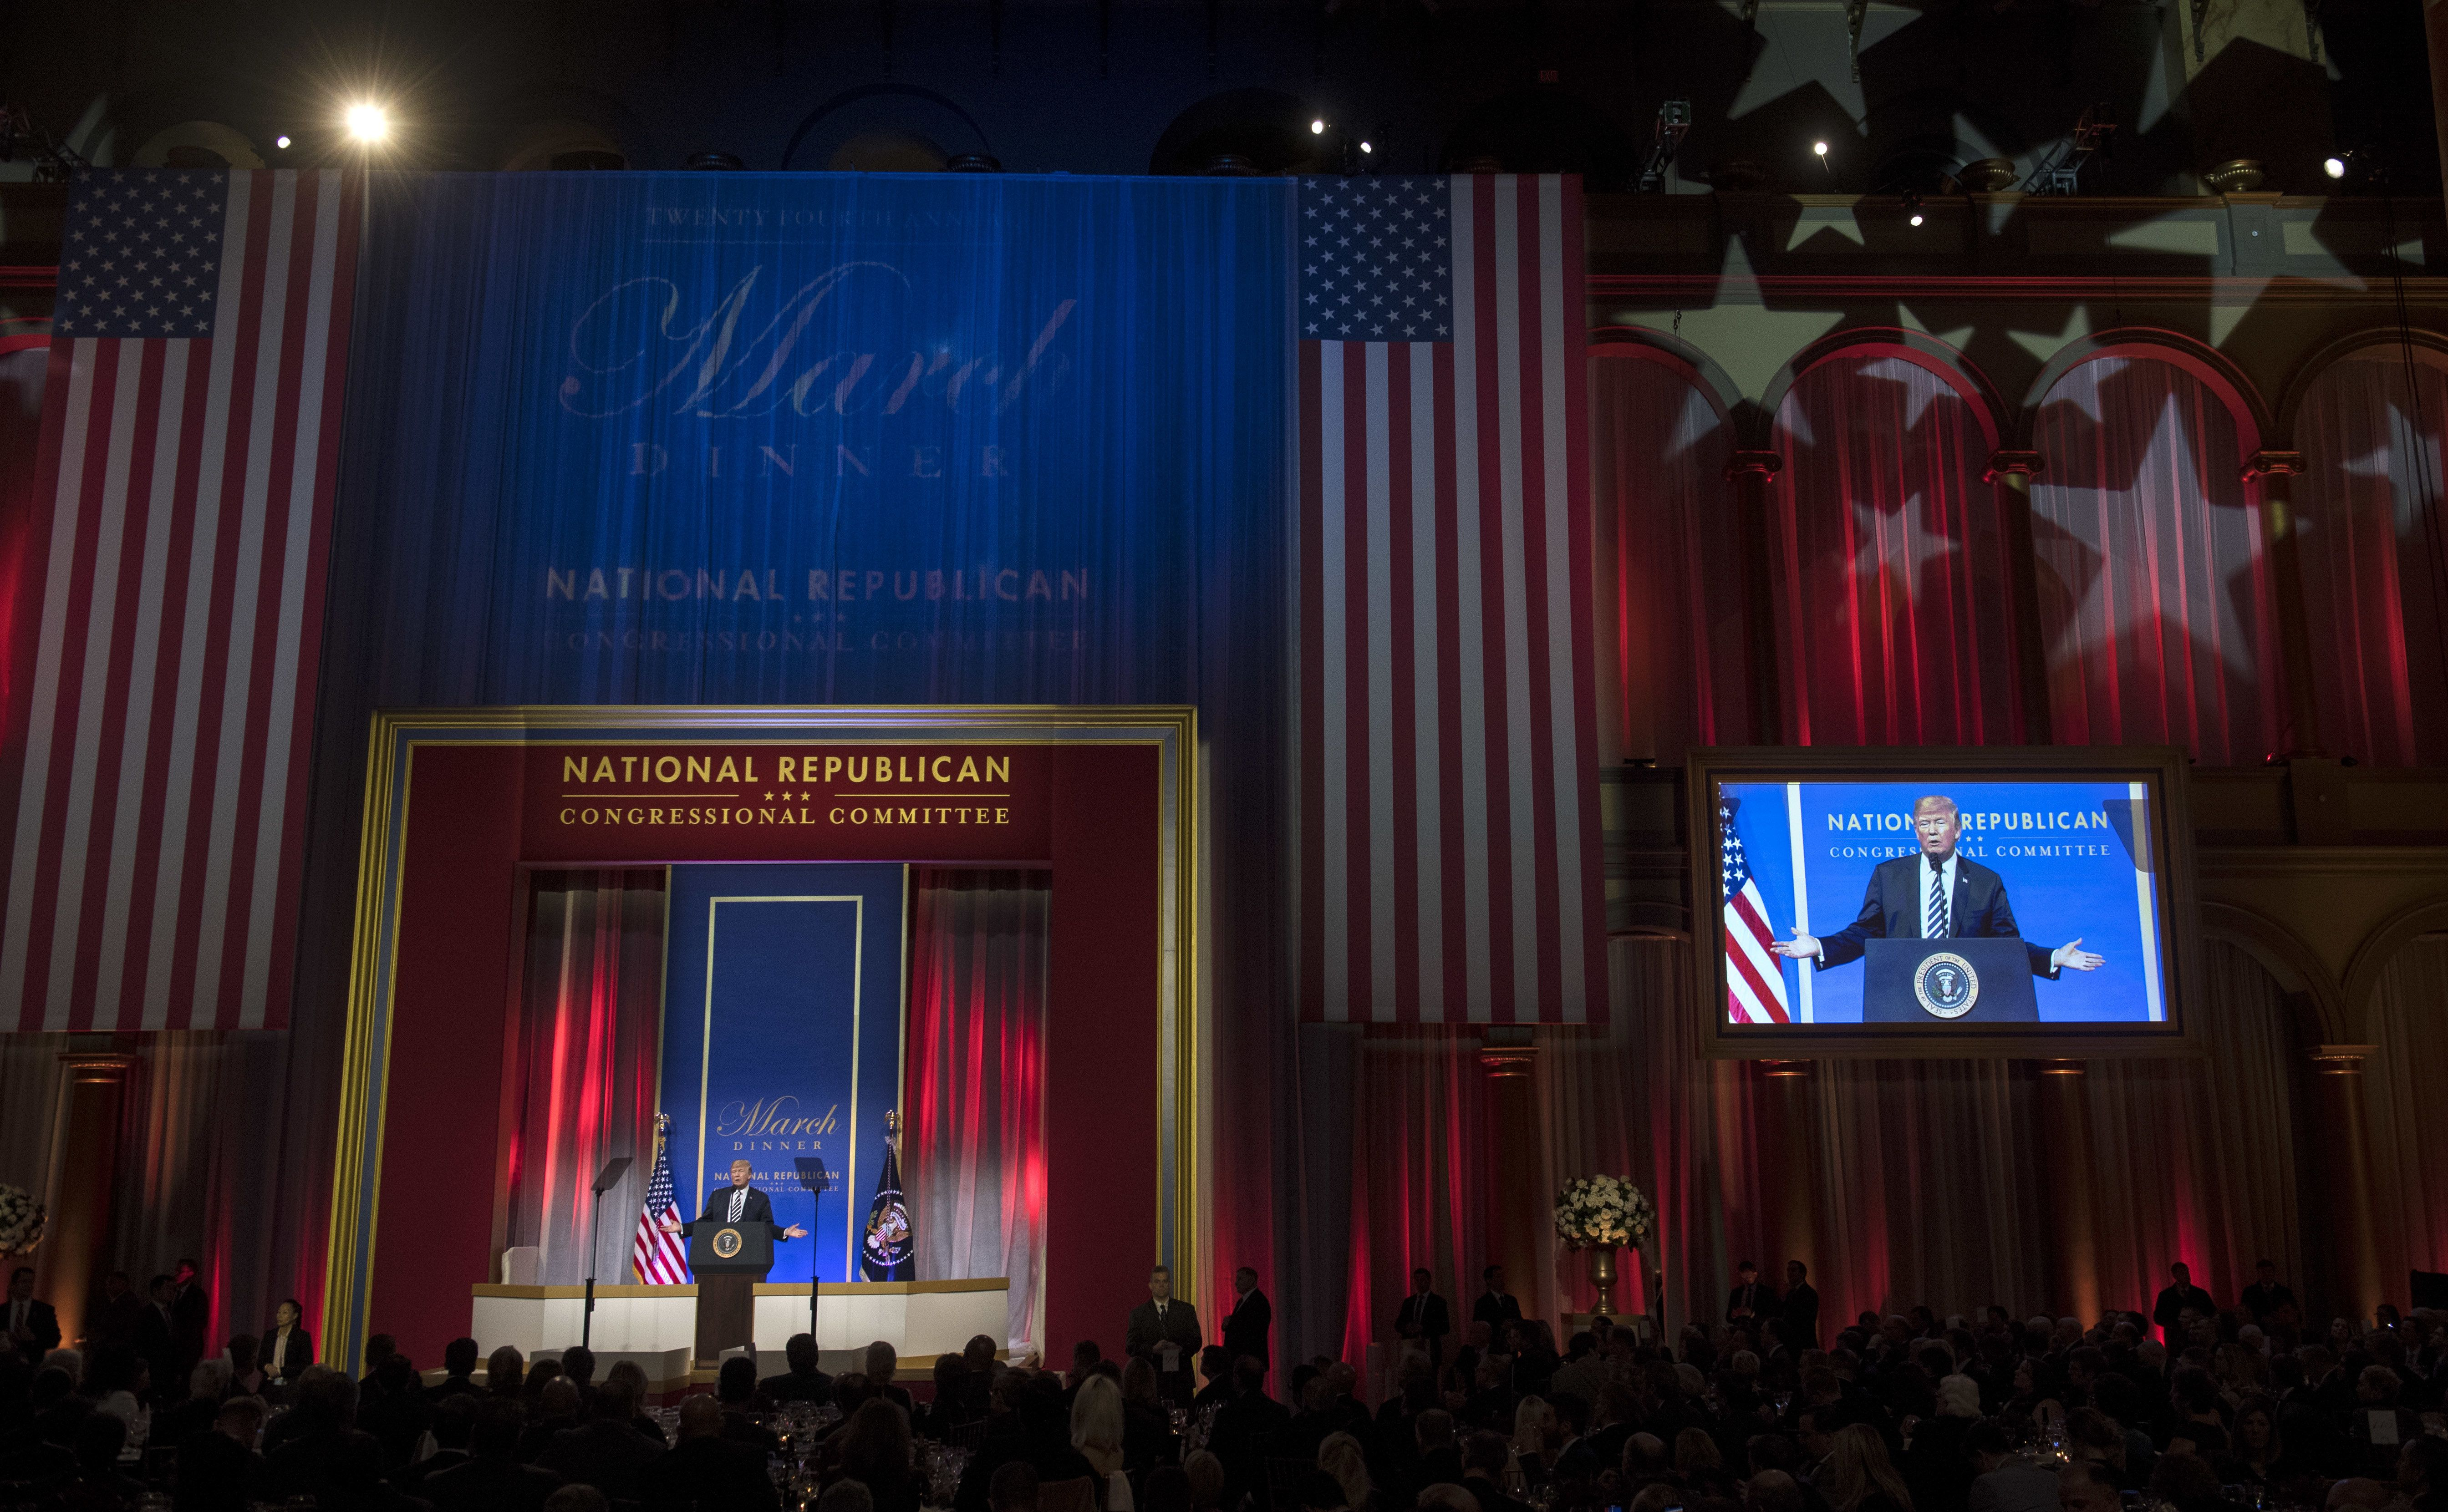 U.S. President Donald Trump delivers a speech at the National Republican Congressional Committee (NRCC) annual March Dinner at the National Building Museum in Washington, D.C., on Tuesday, March 20, 2018. Republicans are privately alarmed that Trump may try to oust Mueller -- a move that would risk setting off a constitutional crisis -- but few have threatened specific consequences if the president does so. Photographer: Kevin Dietsch/Pool via Bloomberg